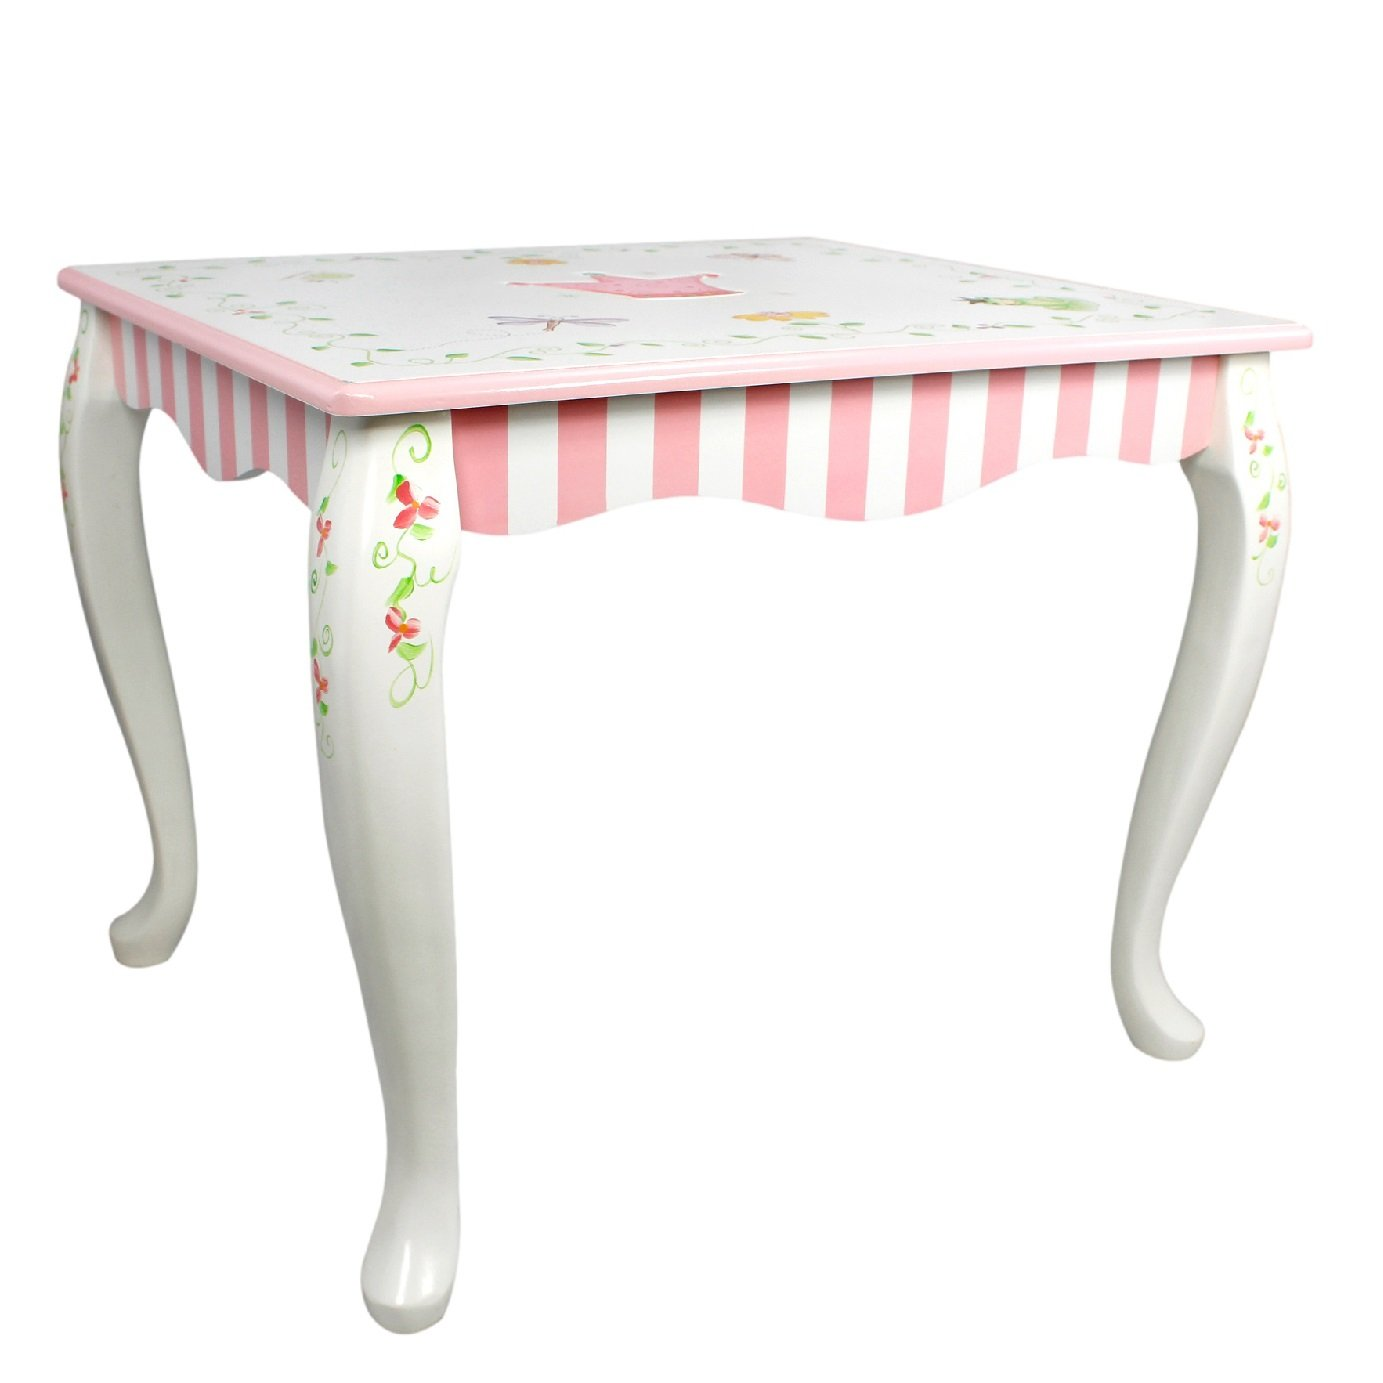 Fantasy Fields - Princess & Frog themed Hand Crafted Kids Wooden Table (Chair Sold Seperately)|   Hand Crafted & Hand Painted Details | Child Friendly Water-based Paint Fantasy Fields By Teamson W-7395A